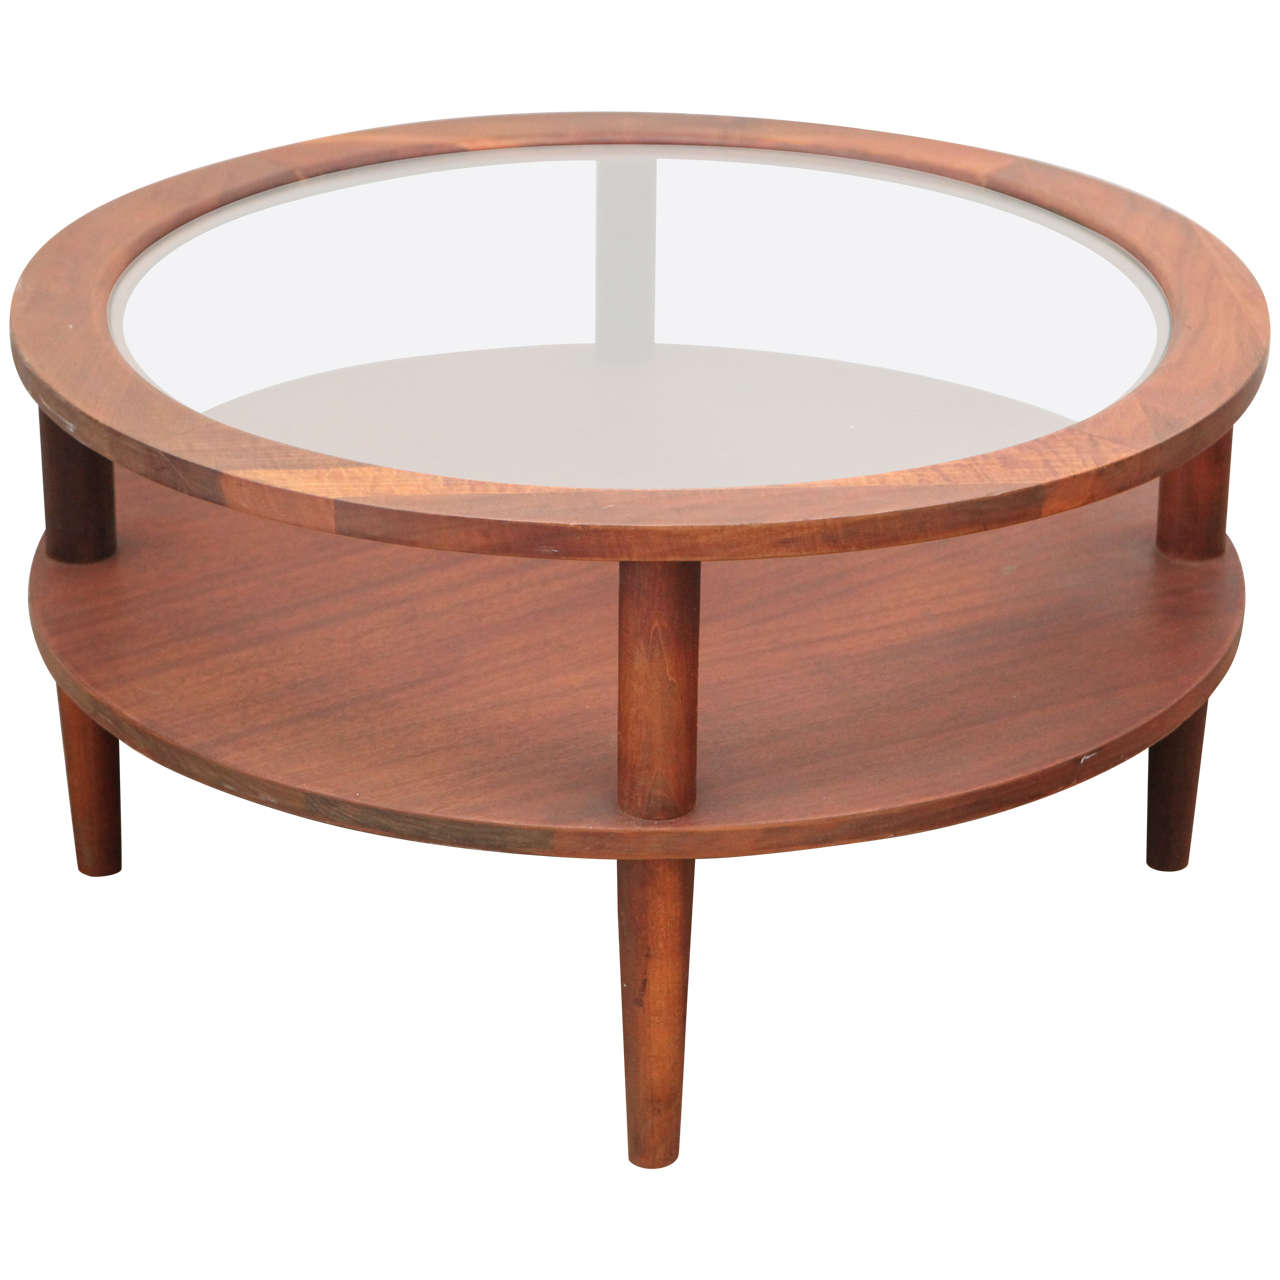 Vintage round glass topped coffee table at 1stdibs Coffee tables glass